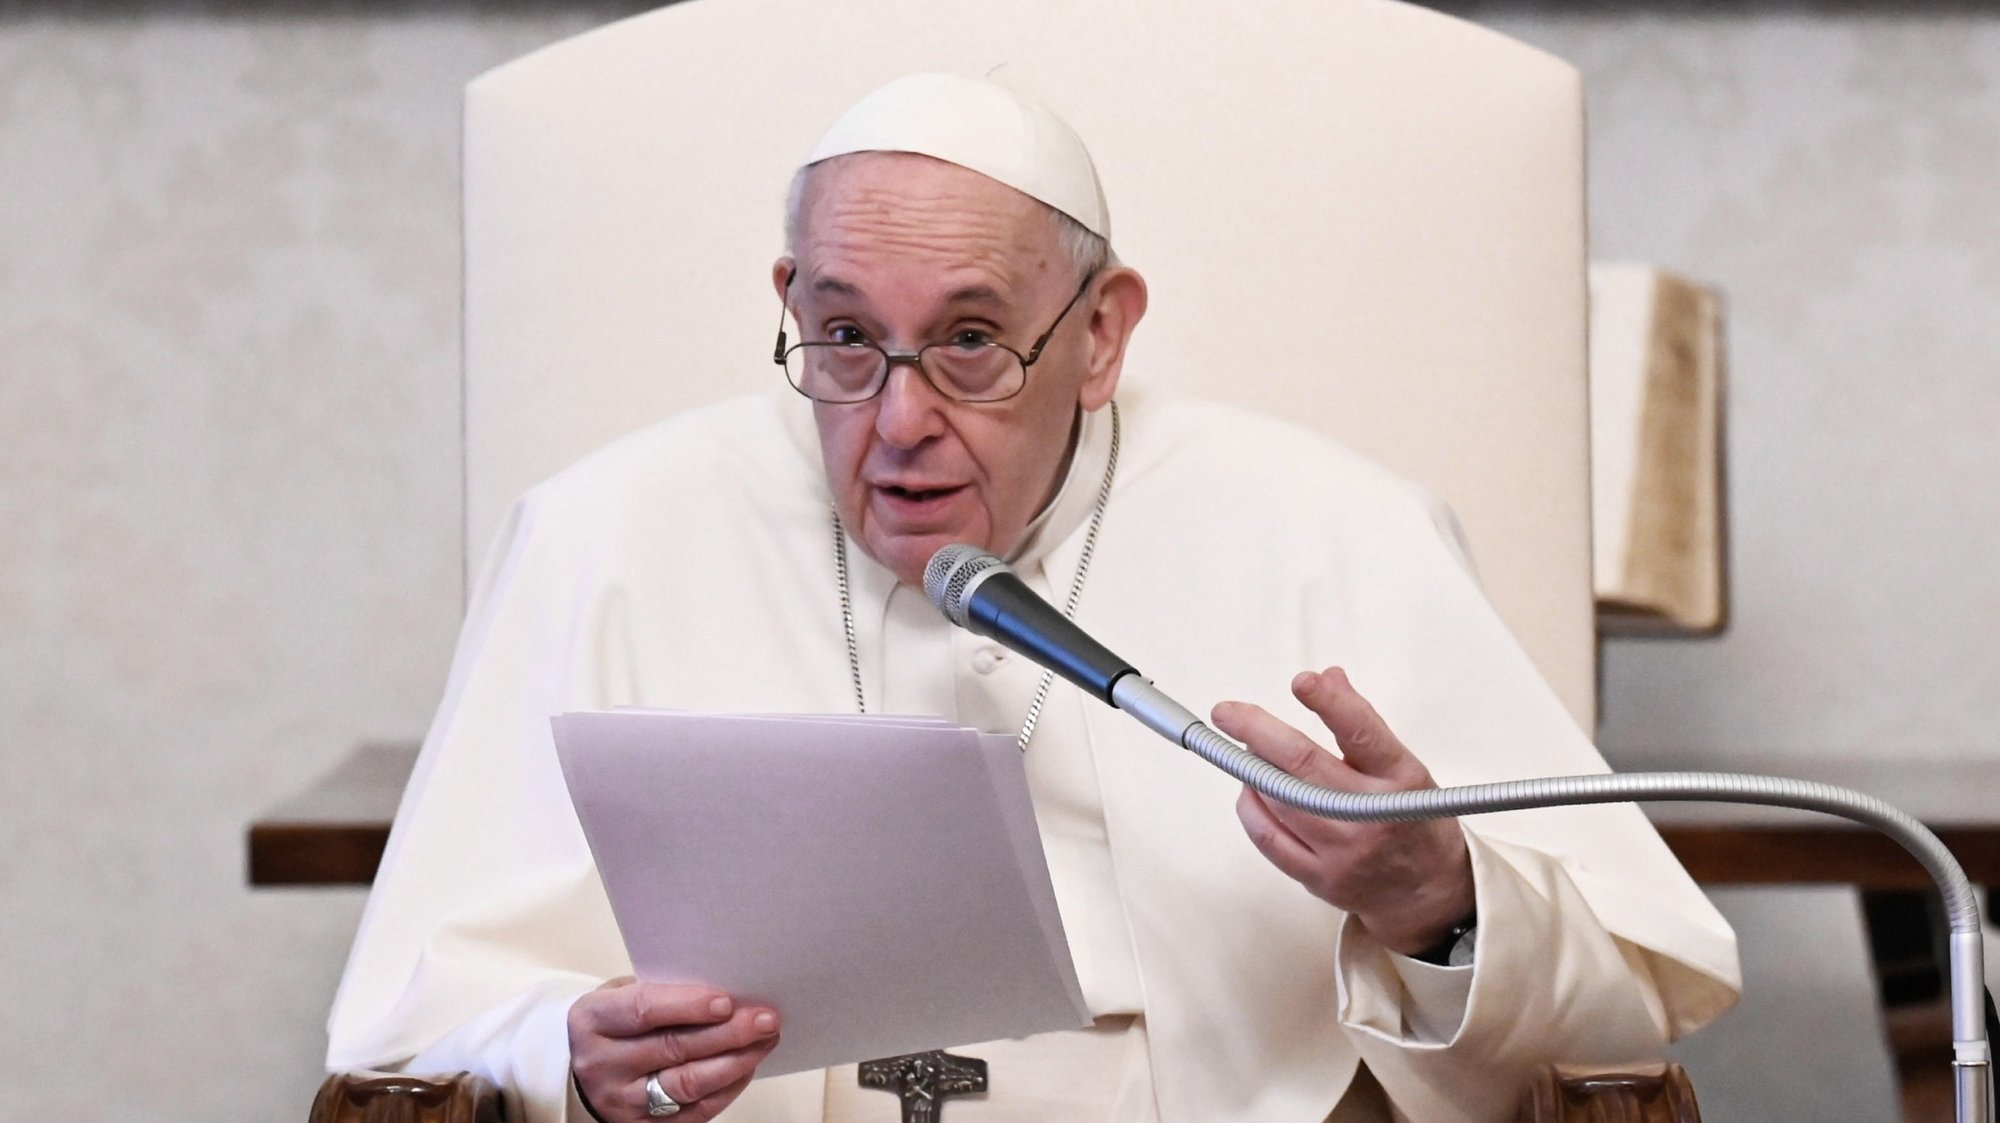 epa09164778 A handout picture made available by Vatican Media Press Office shows Pope Francis giving the General Audience in the library of the Apostolic Palace, Vatican City, 28 April 2021.  EPA/VATICAN MEDIA HANDOUT  HANDOUT EDITORIAL USE ONLY/NO SALES